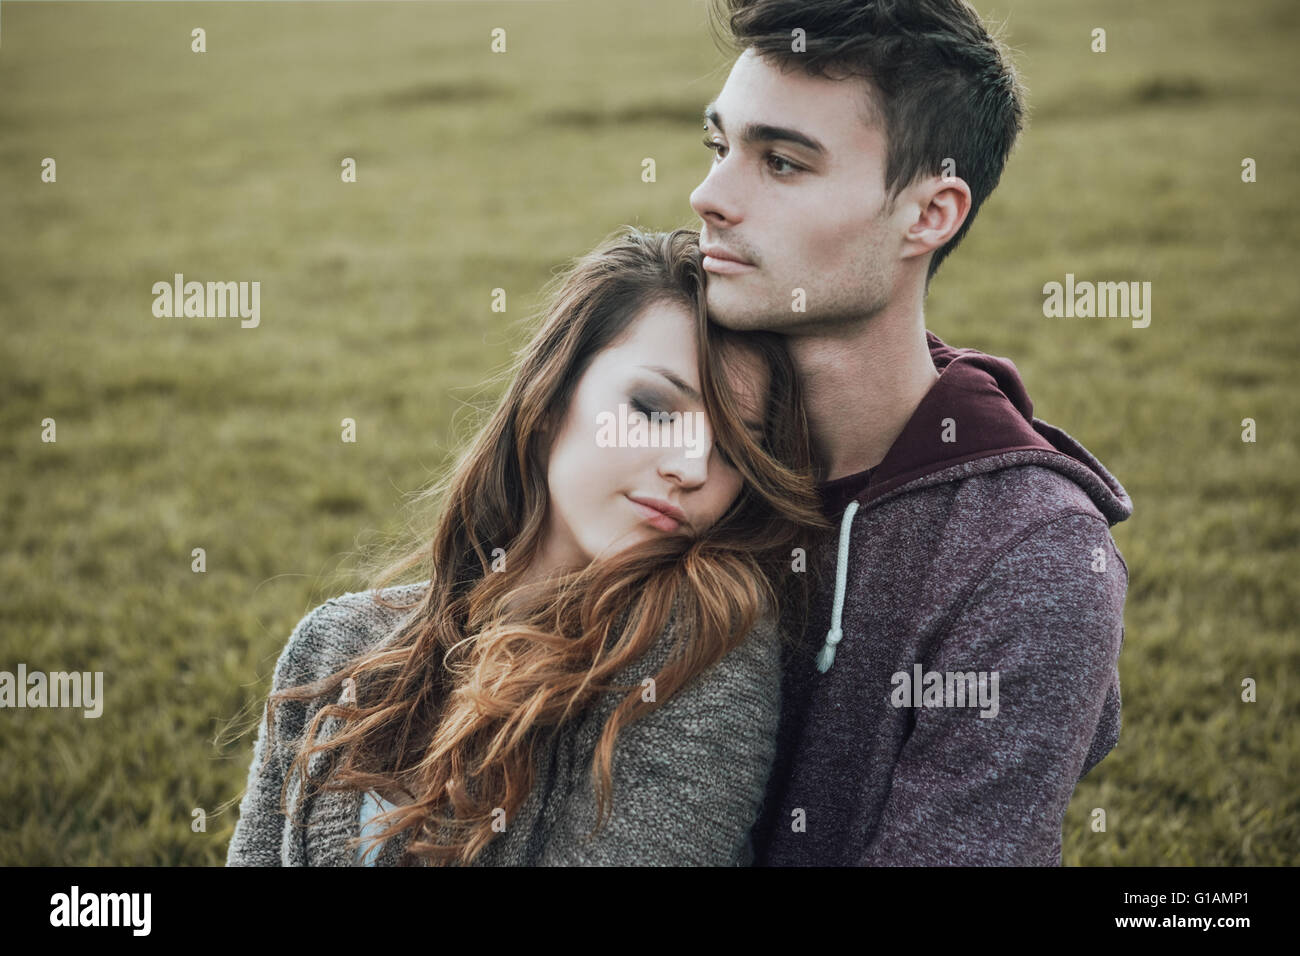 Young teenagers outdoors, sitting on the grass and cuddling, he is hugging his girlfriend, relationships and feelings - Stock Image